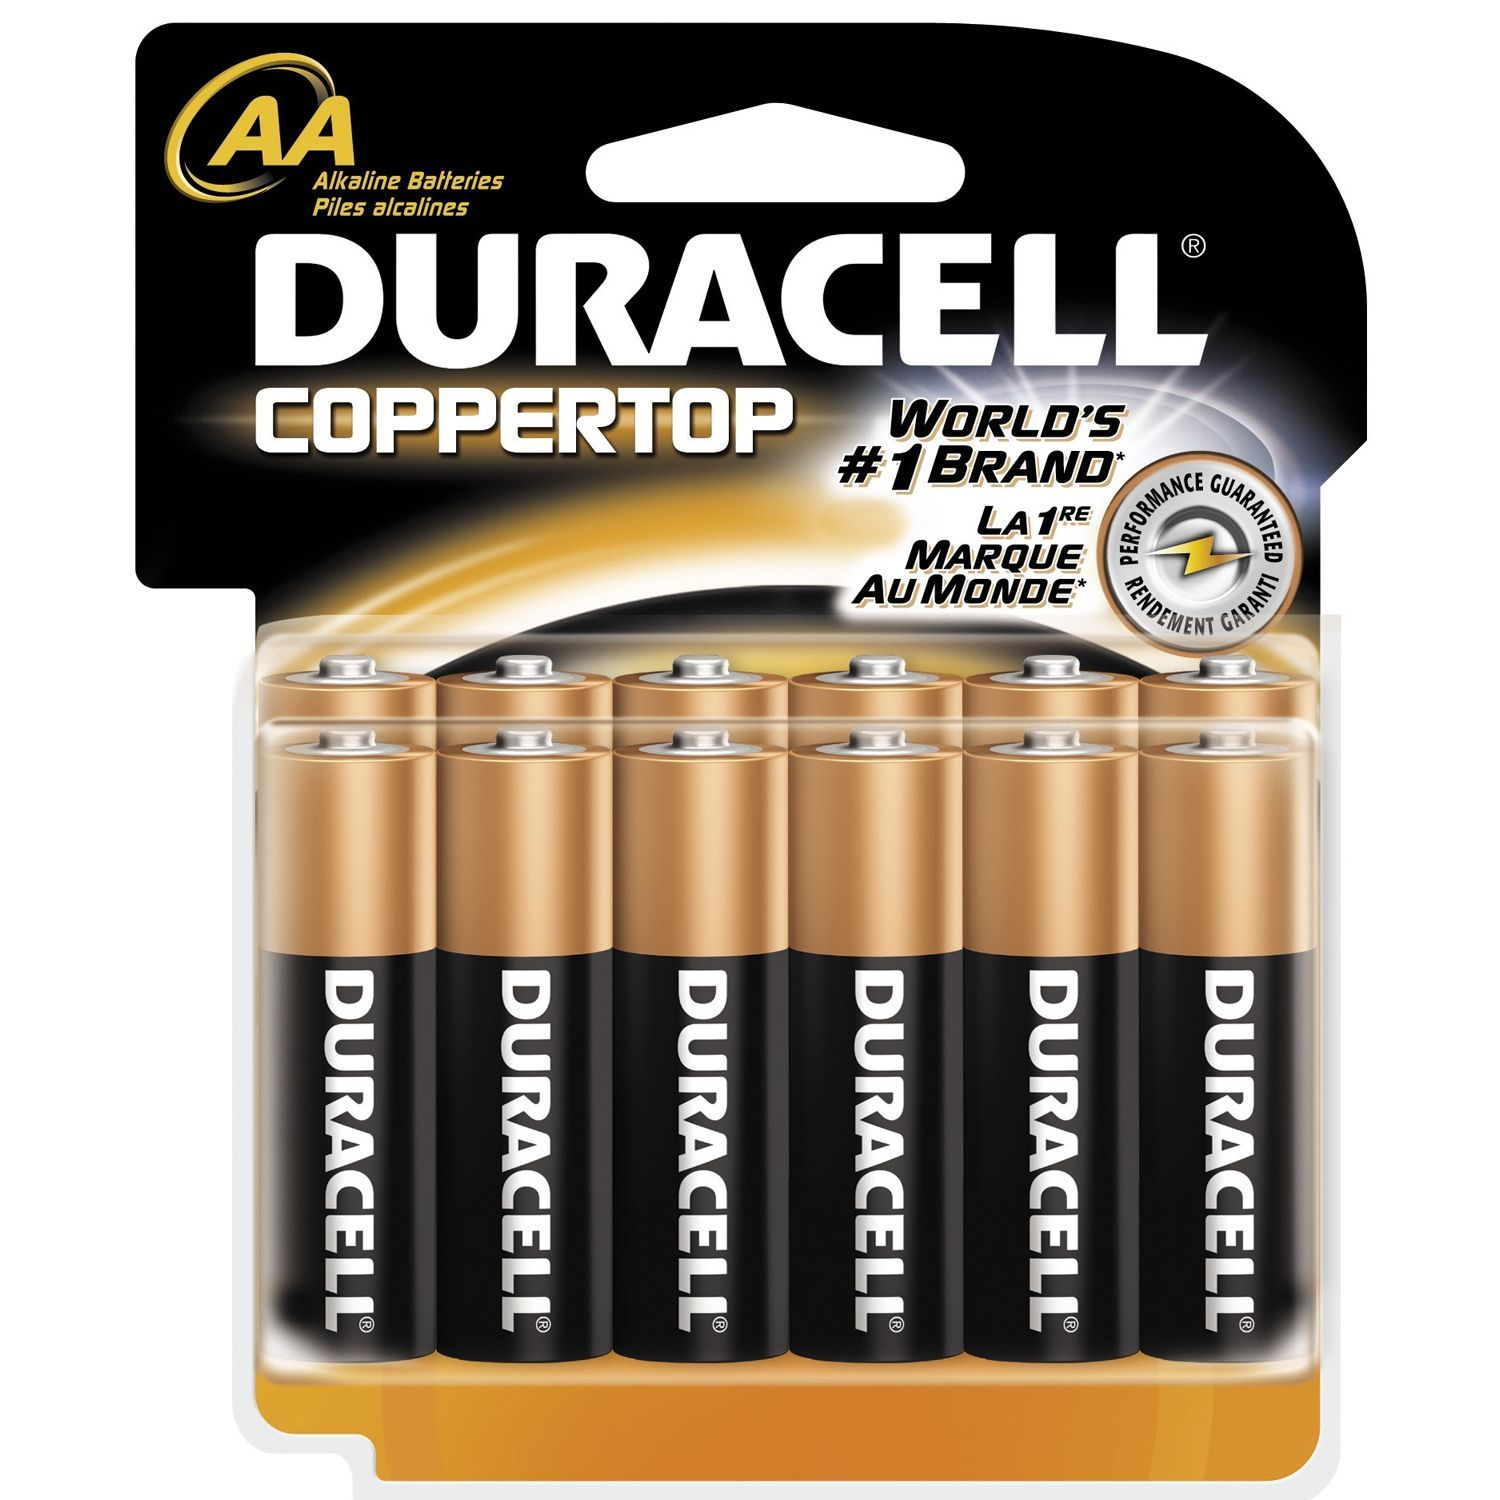 Duracell Aa General Purpose Battery Pack Of 12 Grey